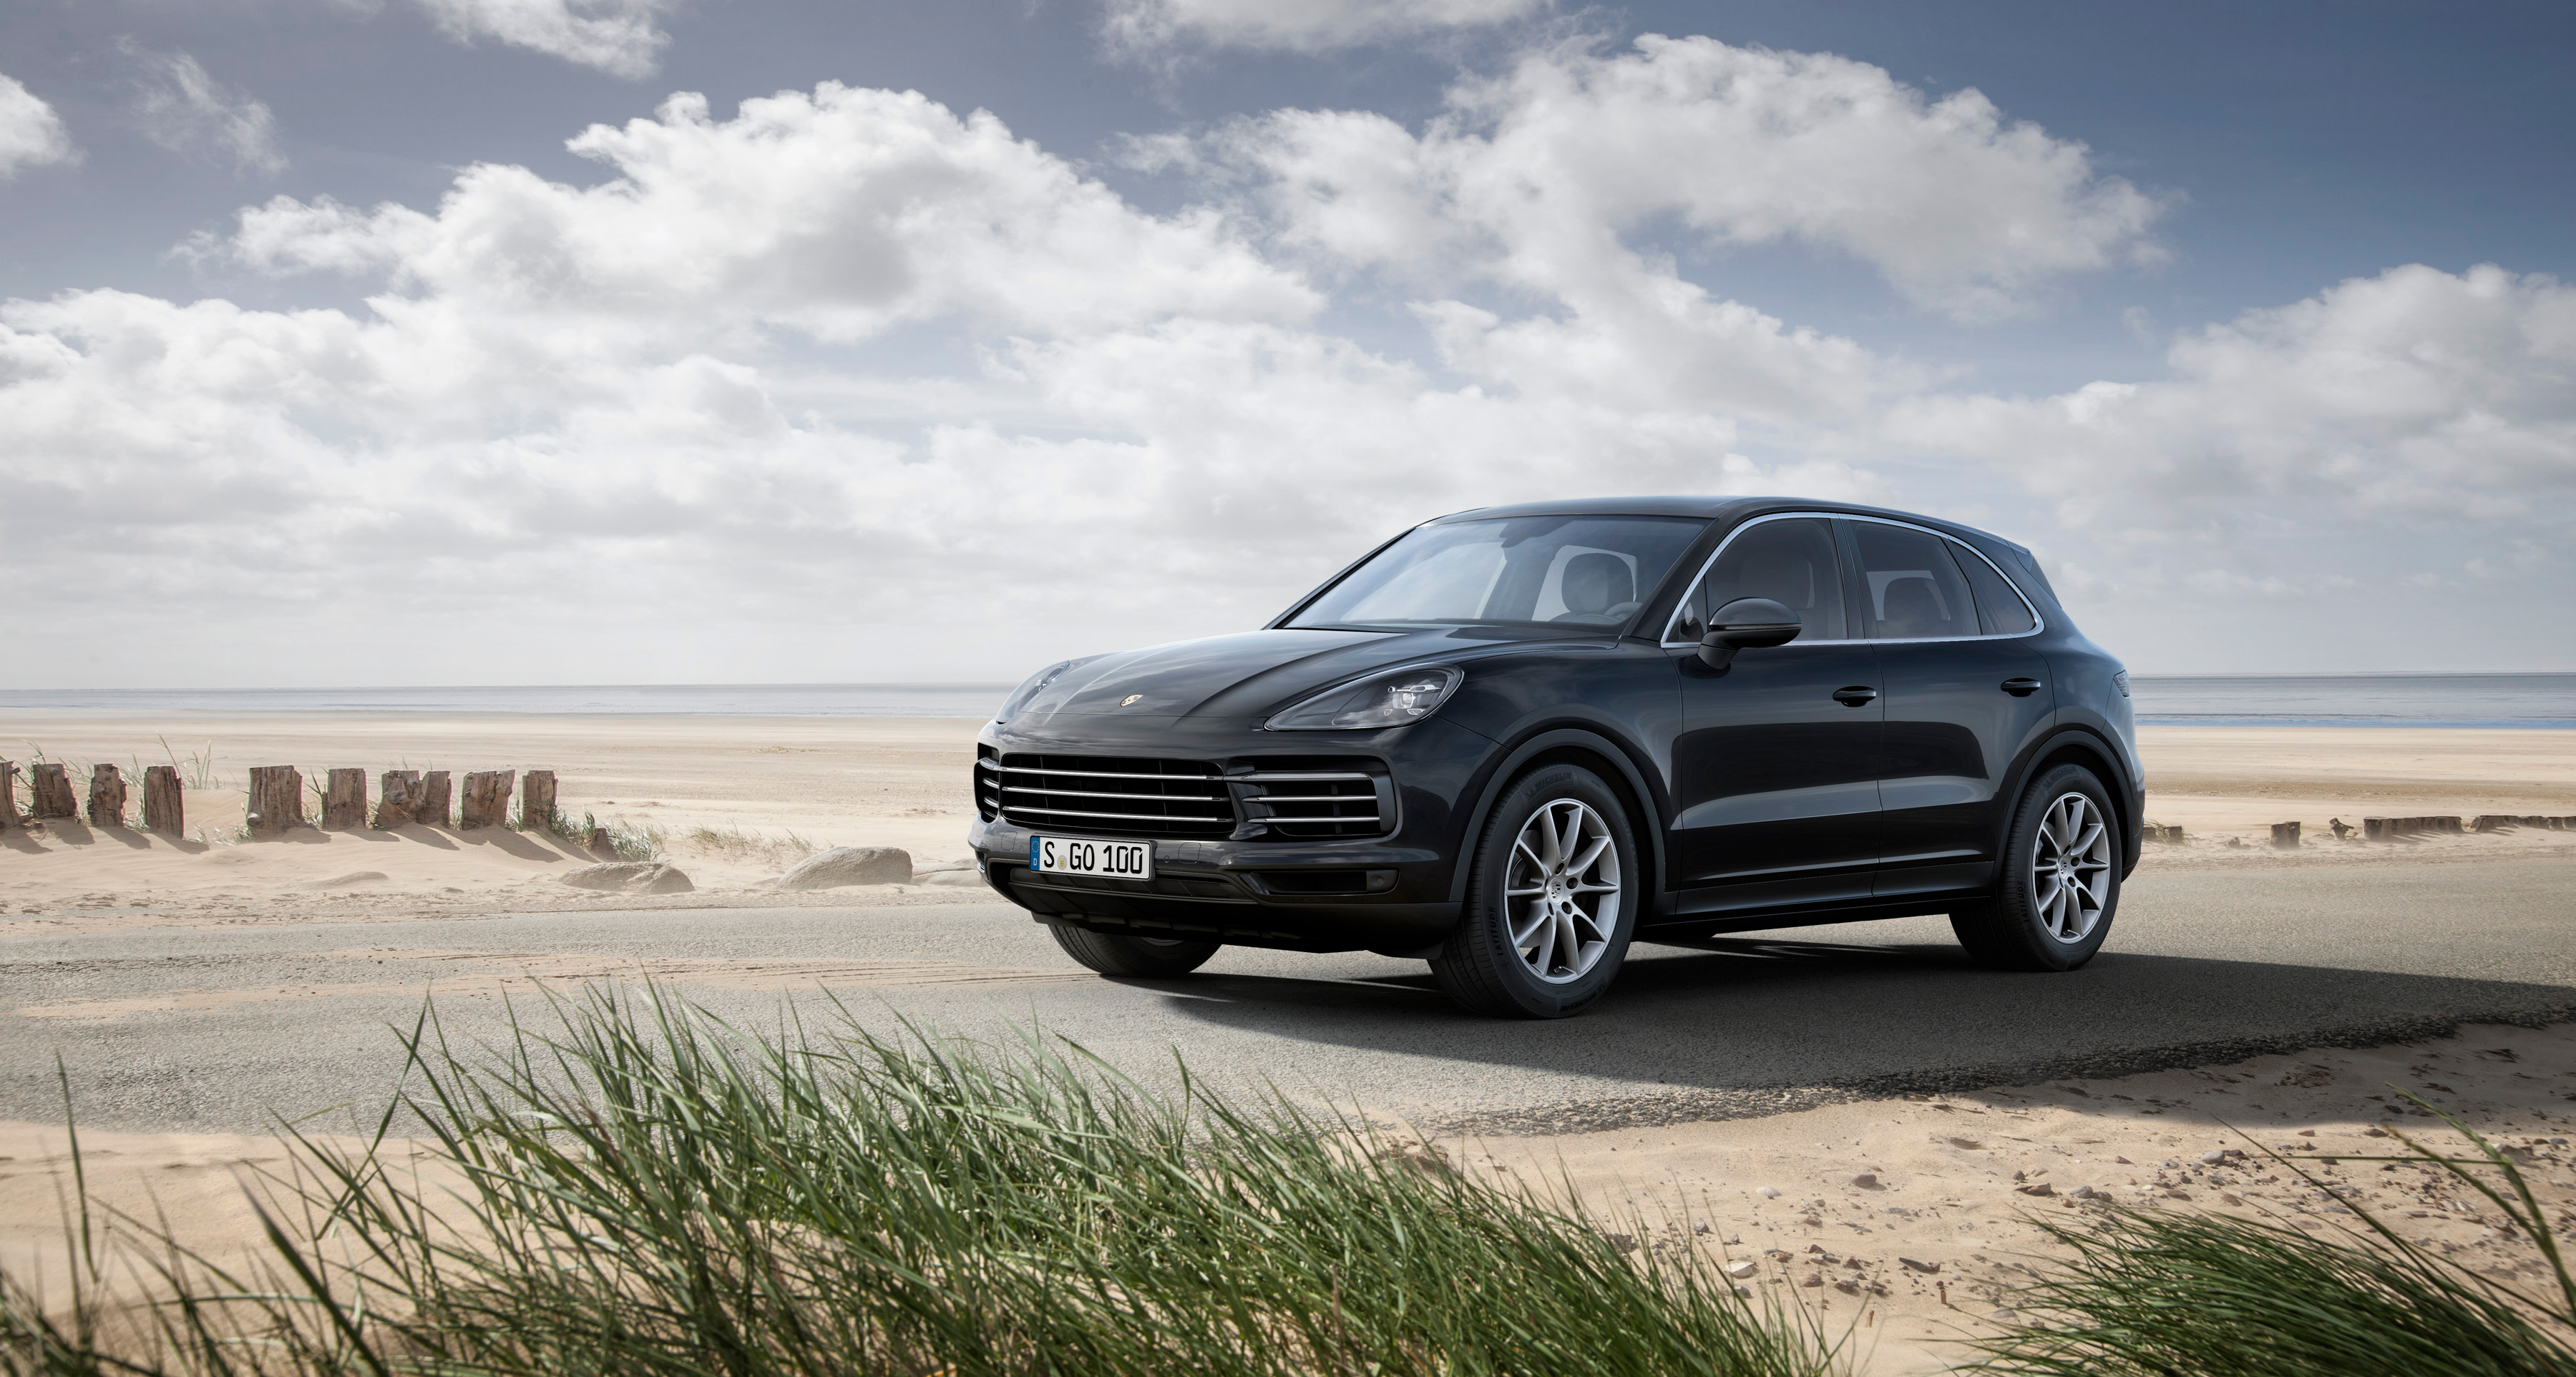 Porsche Cayenne 2017 Hd Cars 4k Wallpapers Images Backgrounds